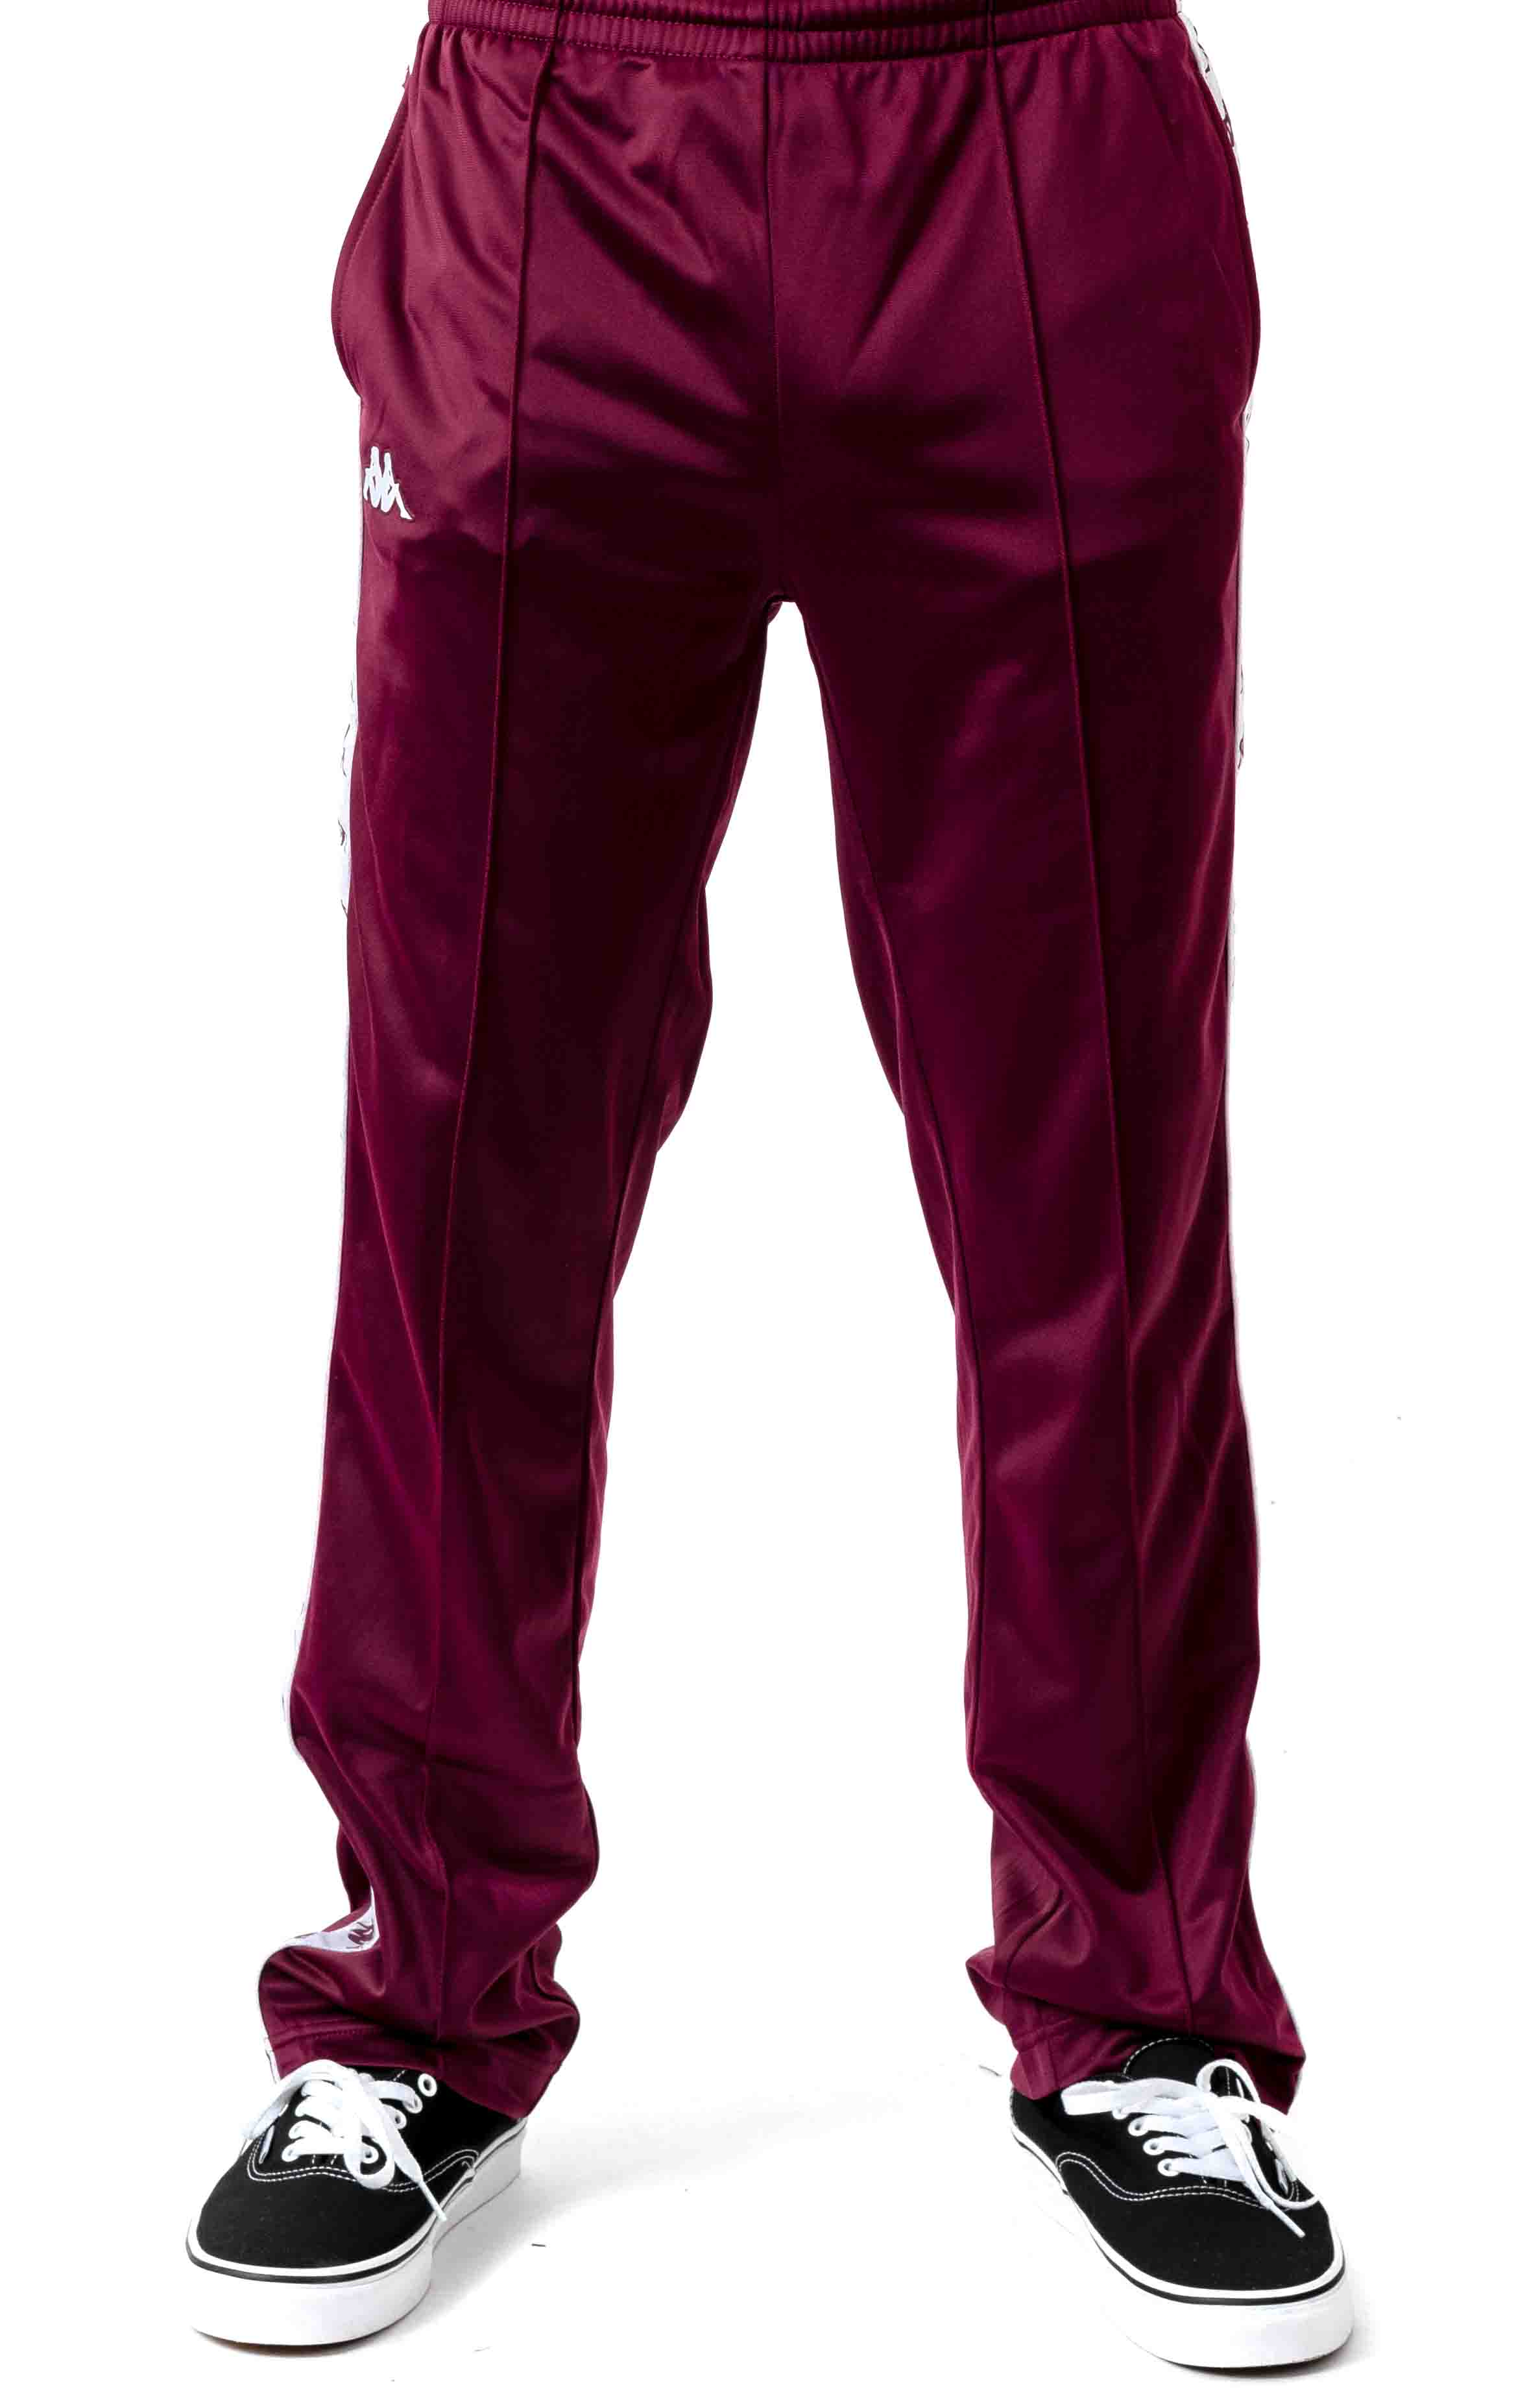 222 Banda Astoriazz Trackpant - Violet 2